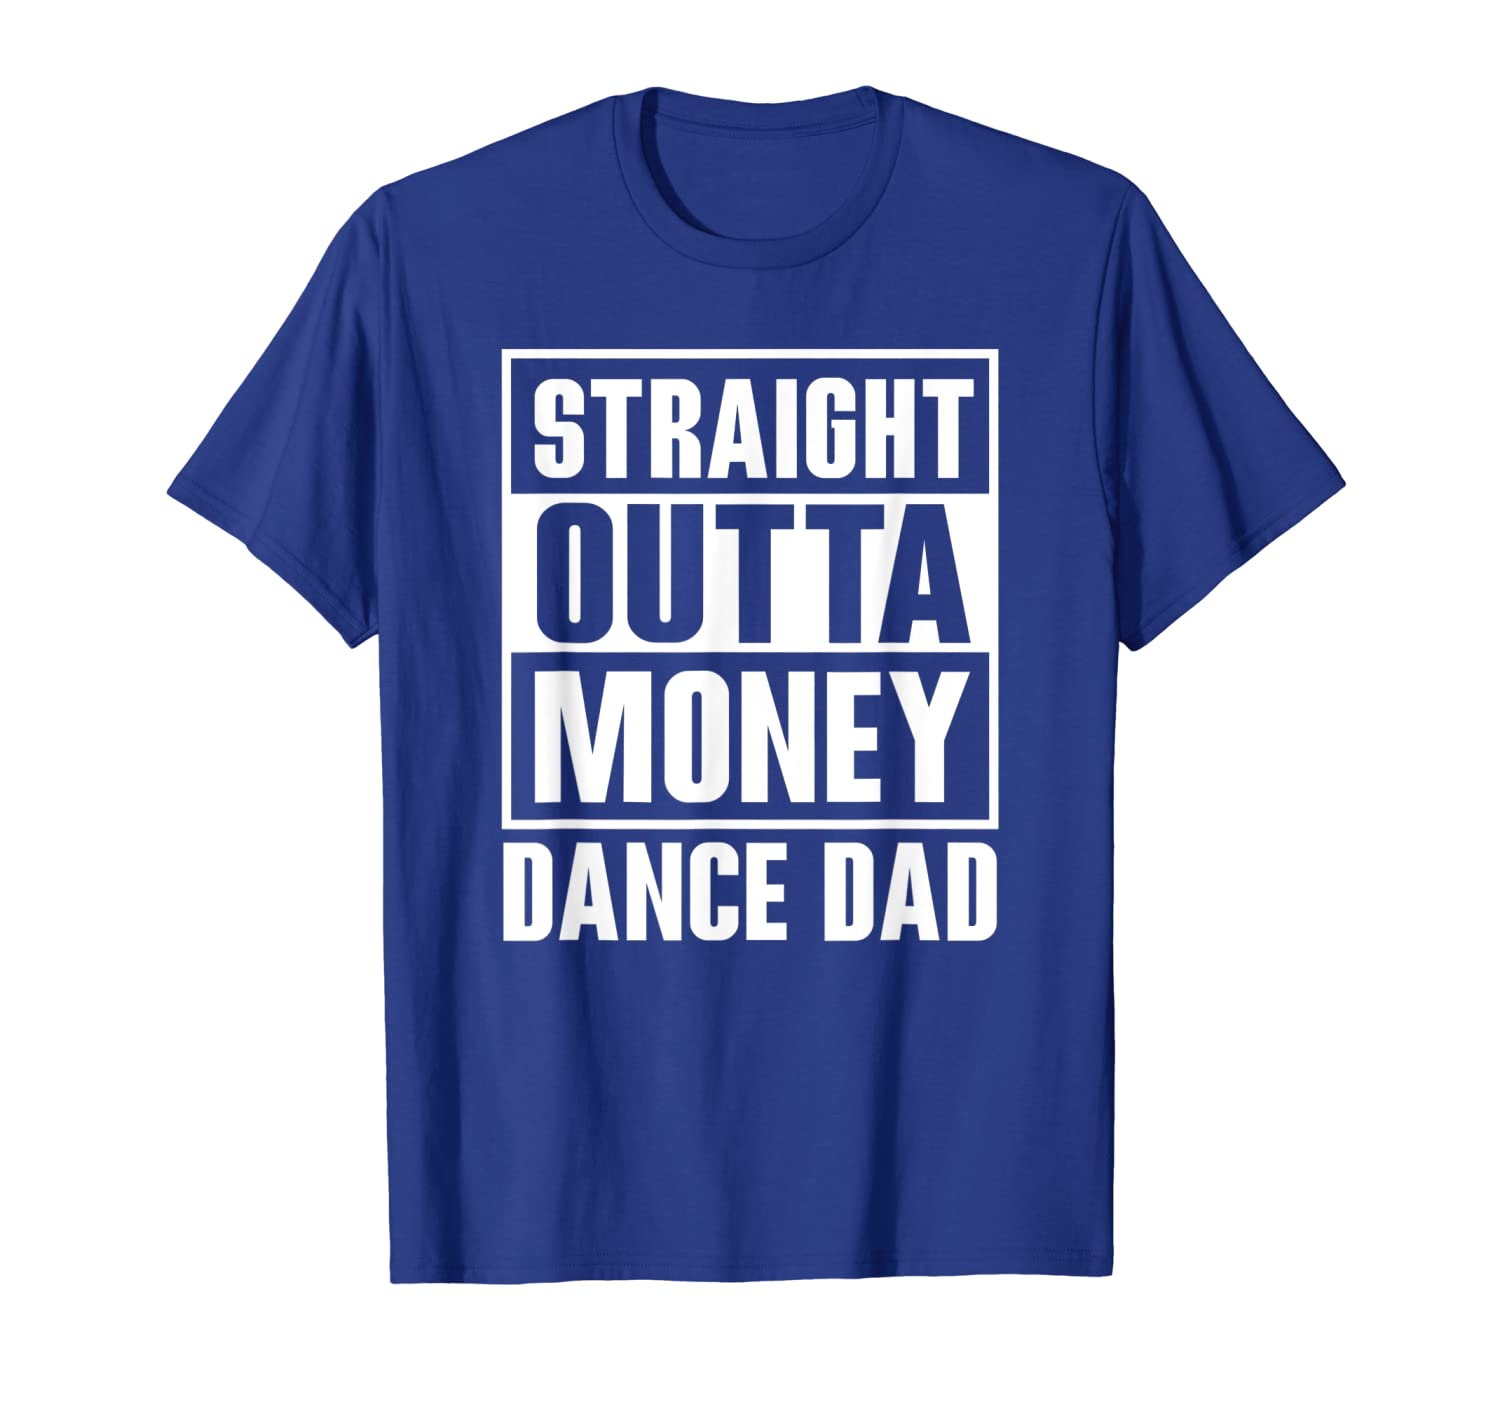 07d835f189 Amazon.com: Mens Dance Dad Straight Outta Money Funny T-Shirt For Dance Dads:  Clothing